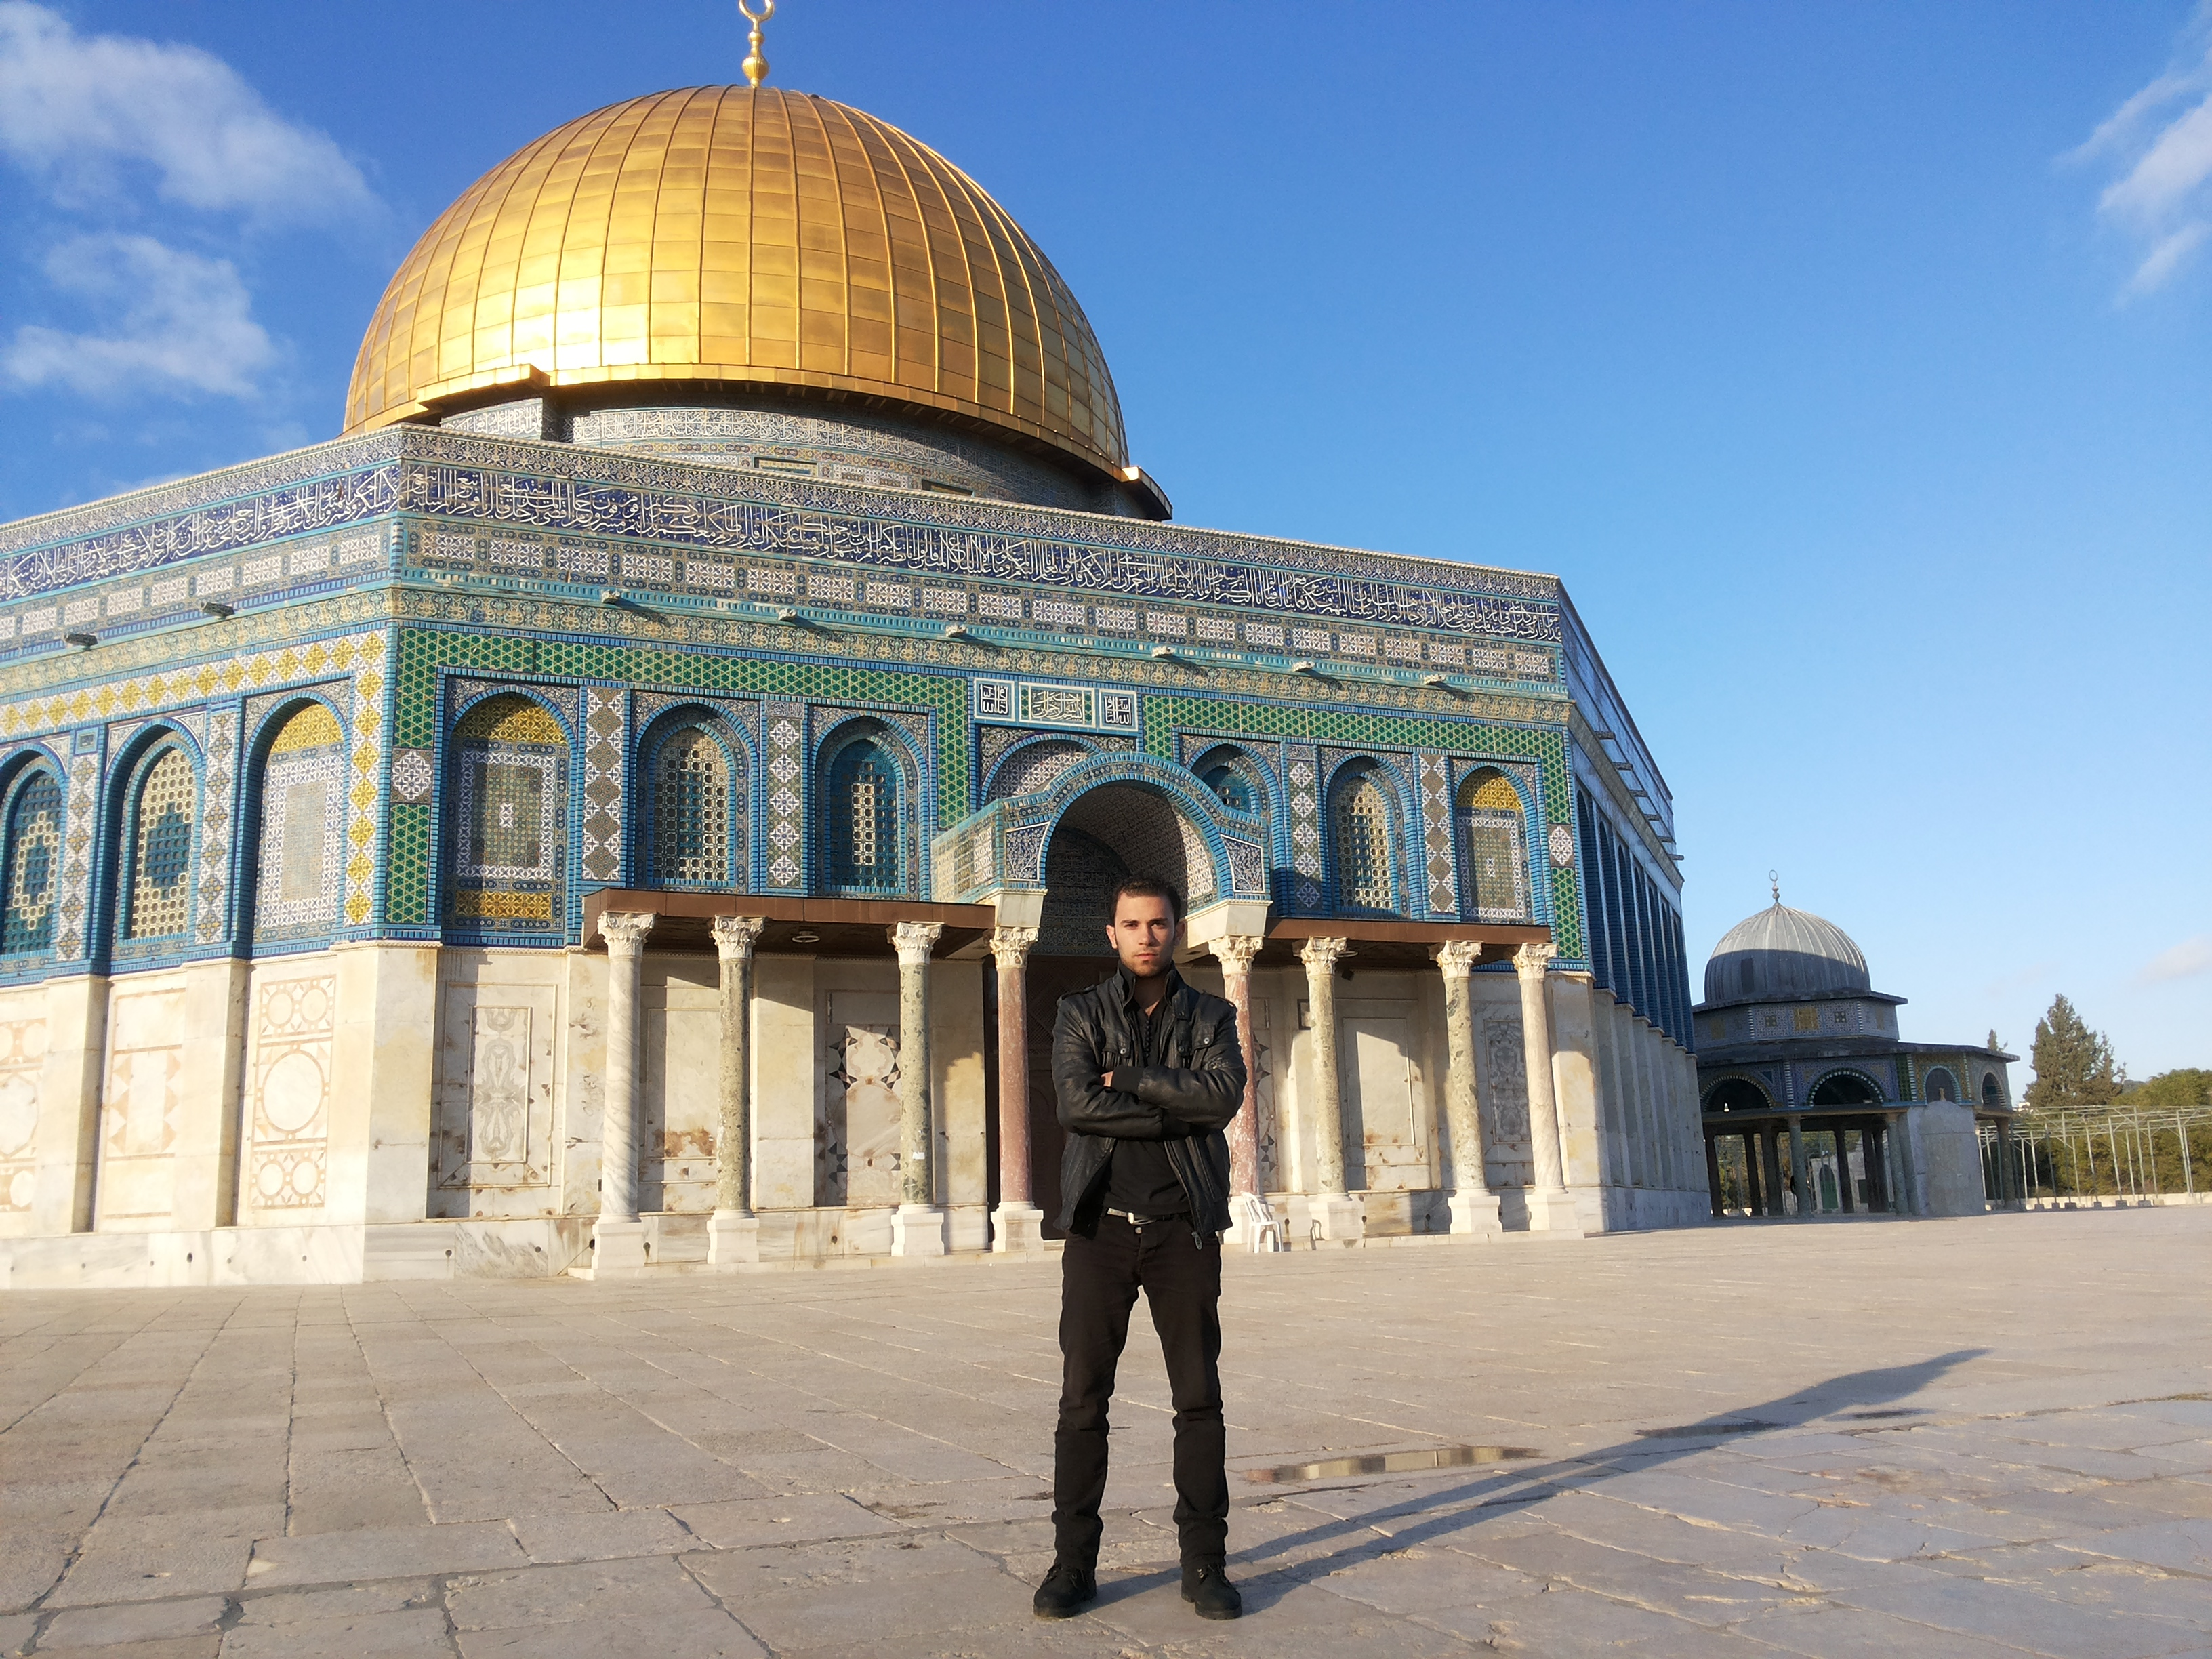 Fadi in front of the Dome of the Rock